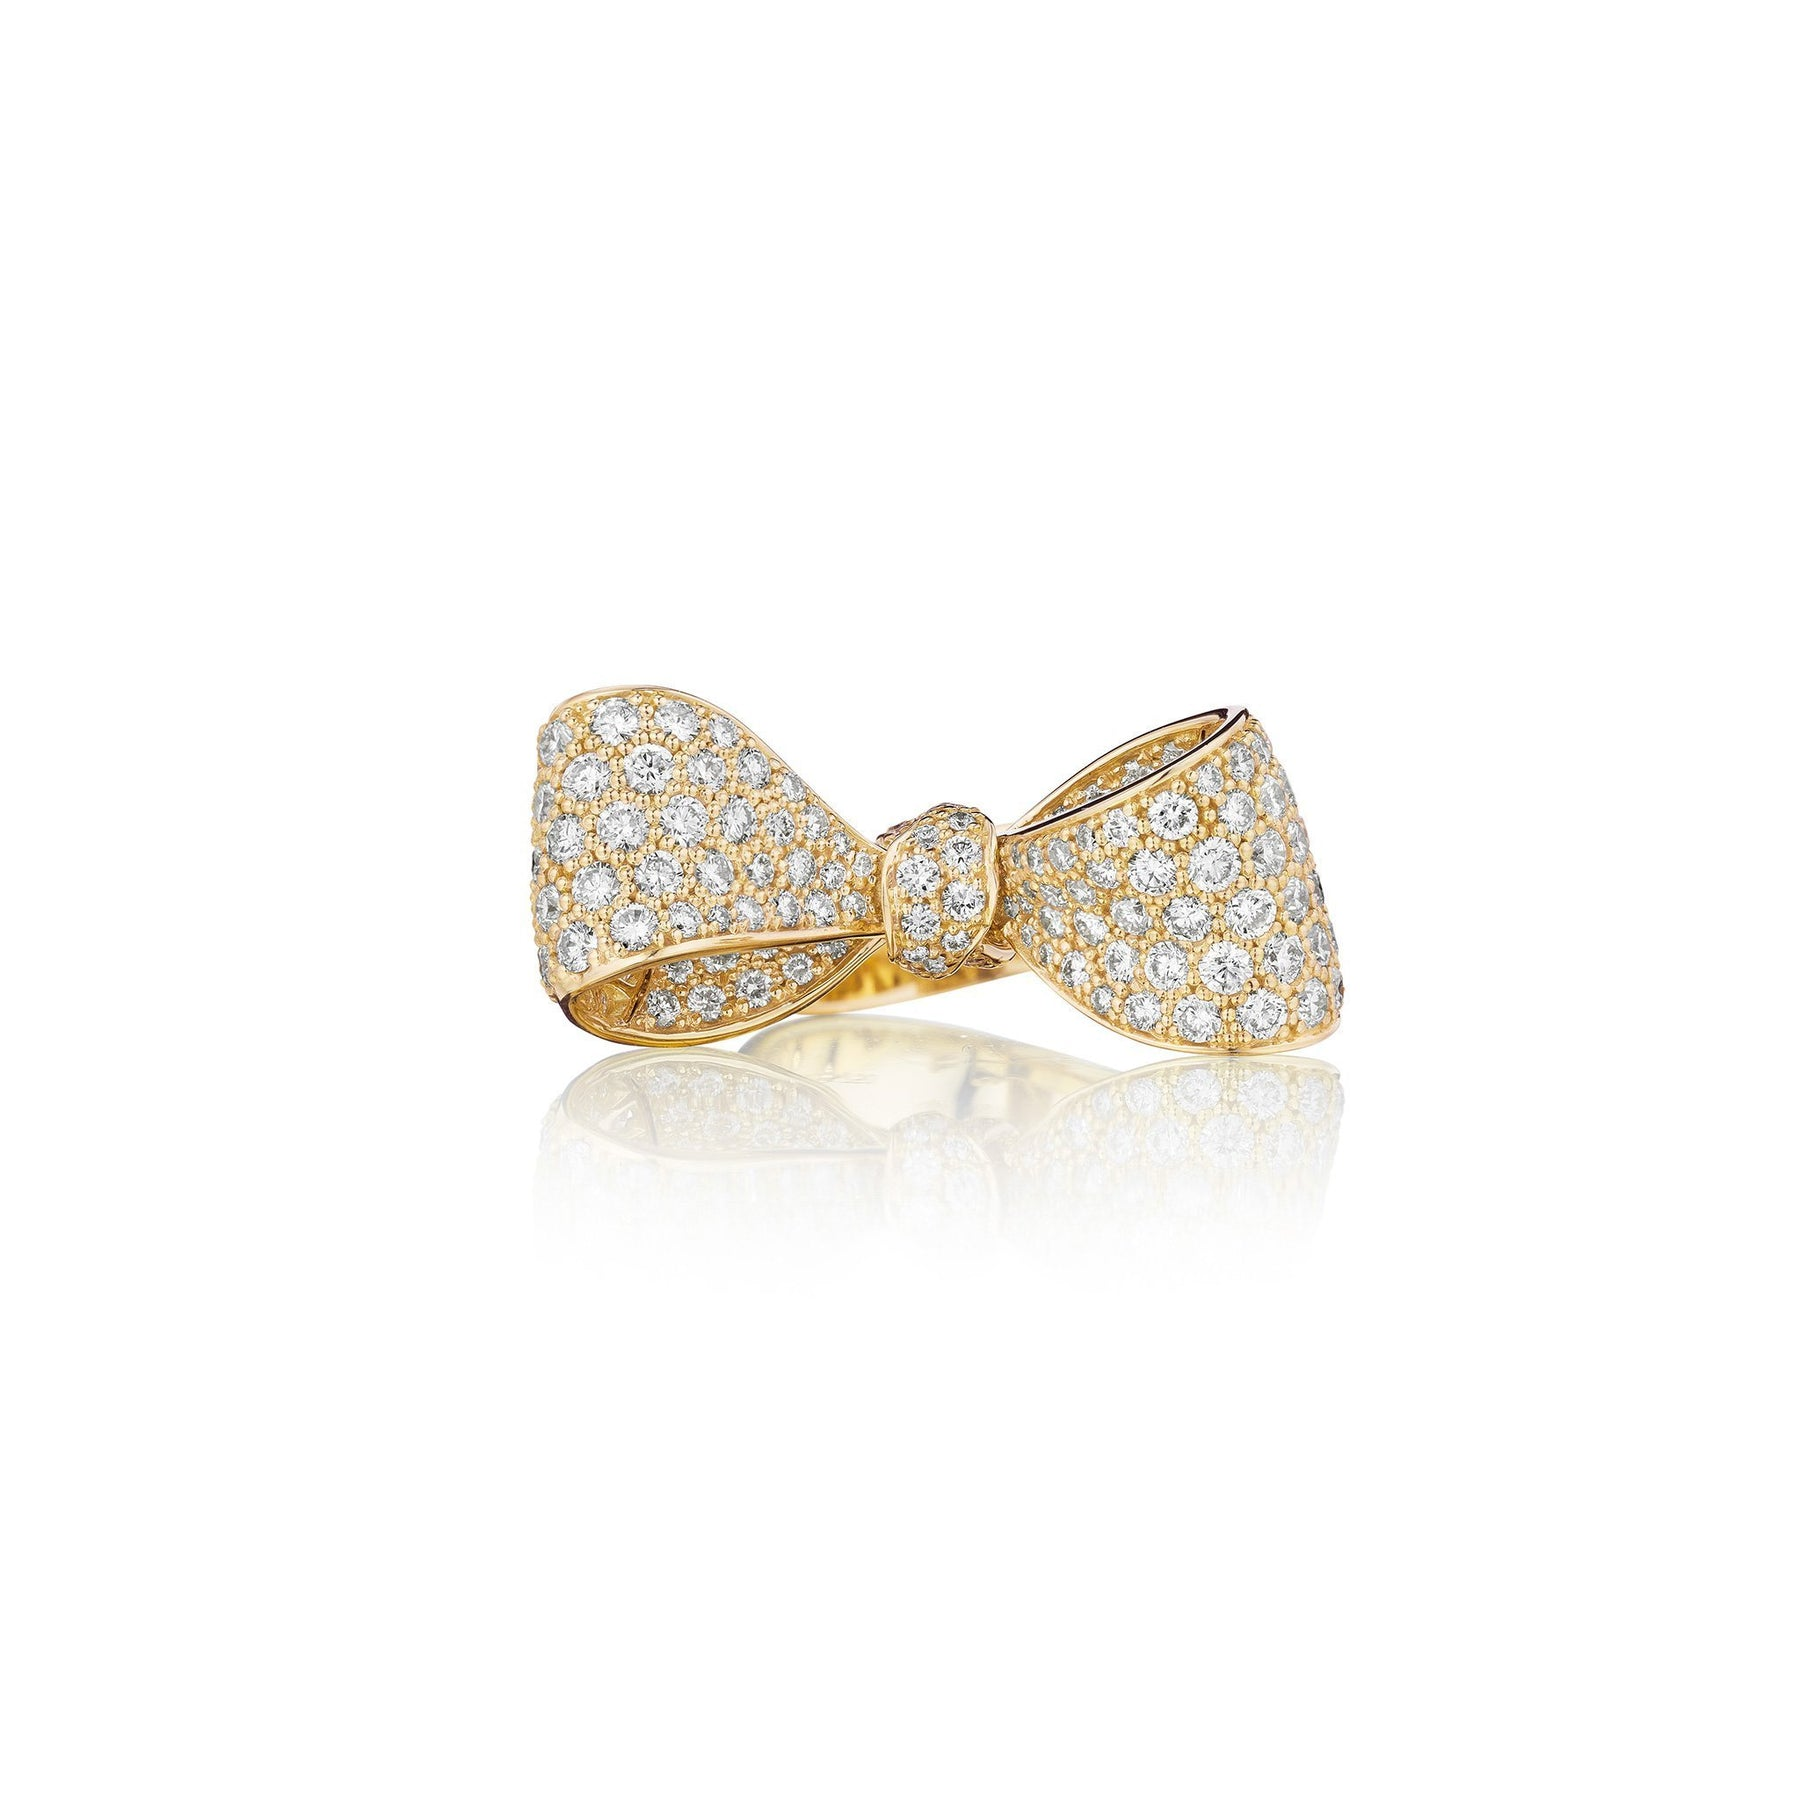 Mimi-So-Medium-Diamond-Bow-Ring_18k Yellow Gold